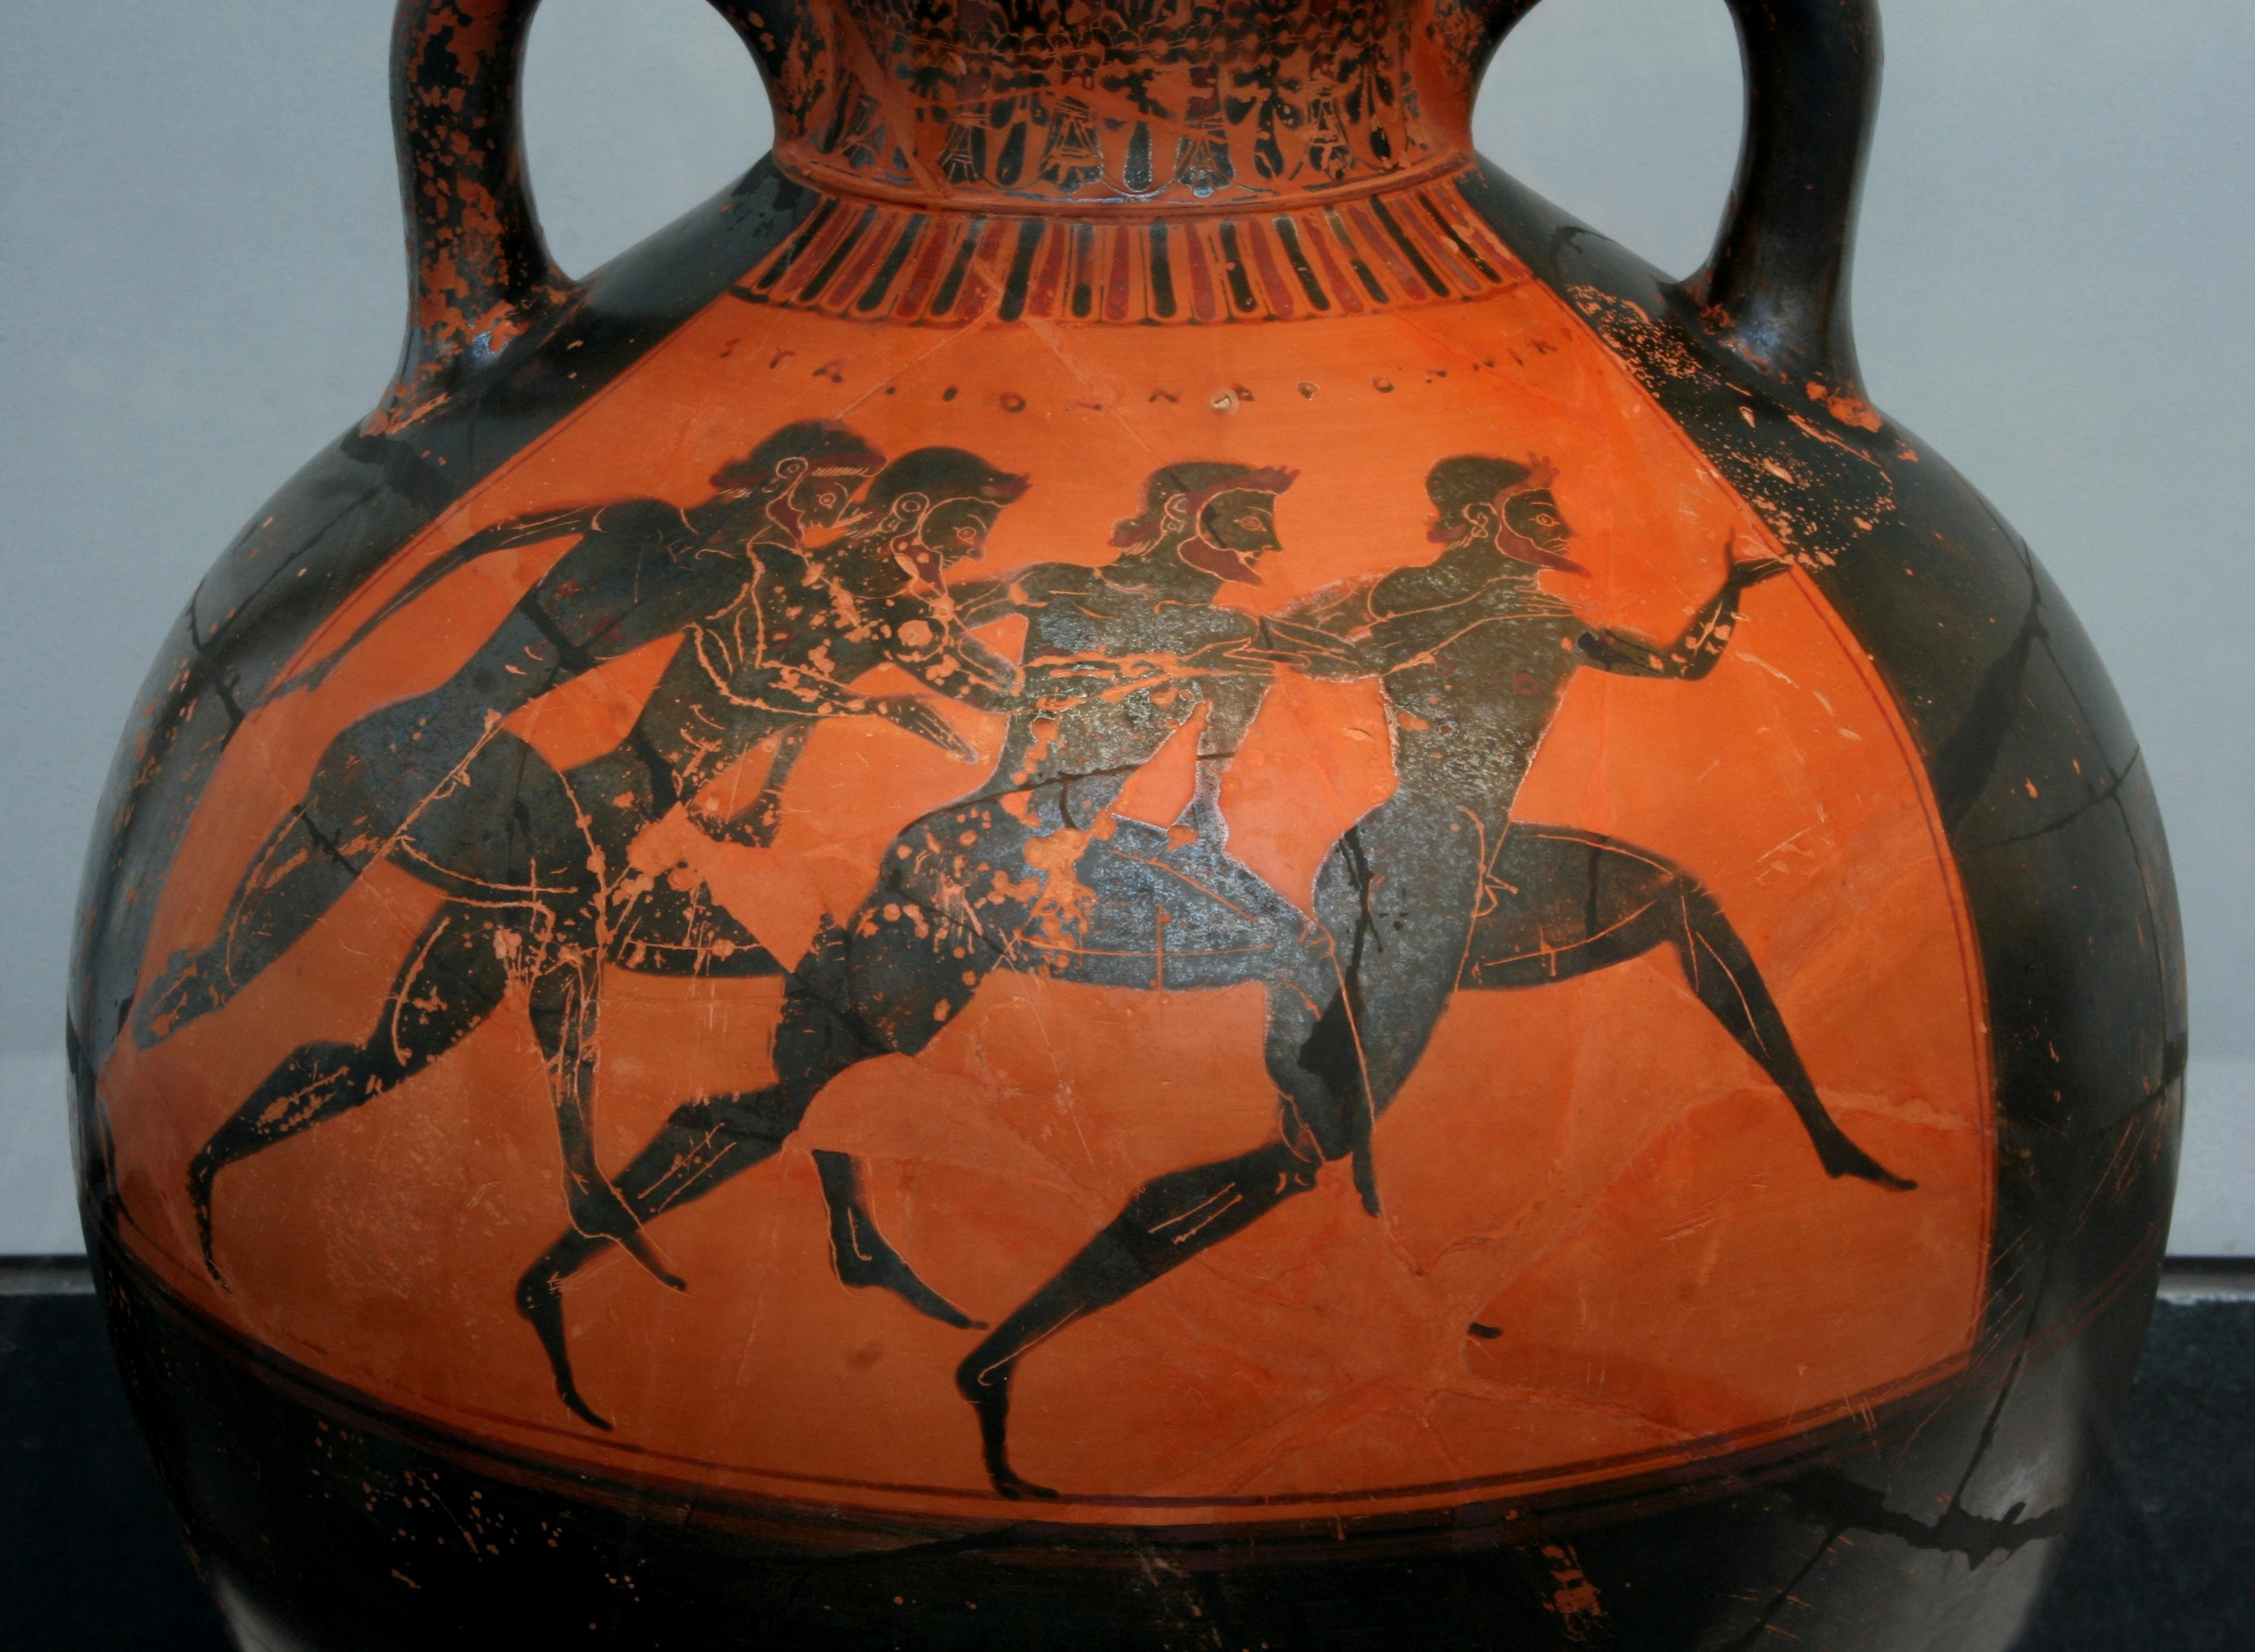 Greek_vase_with_runners_at_the_panathenaic_games_530_bC